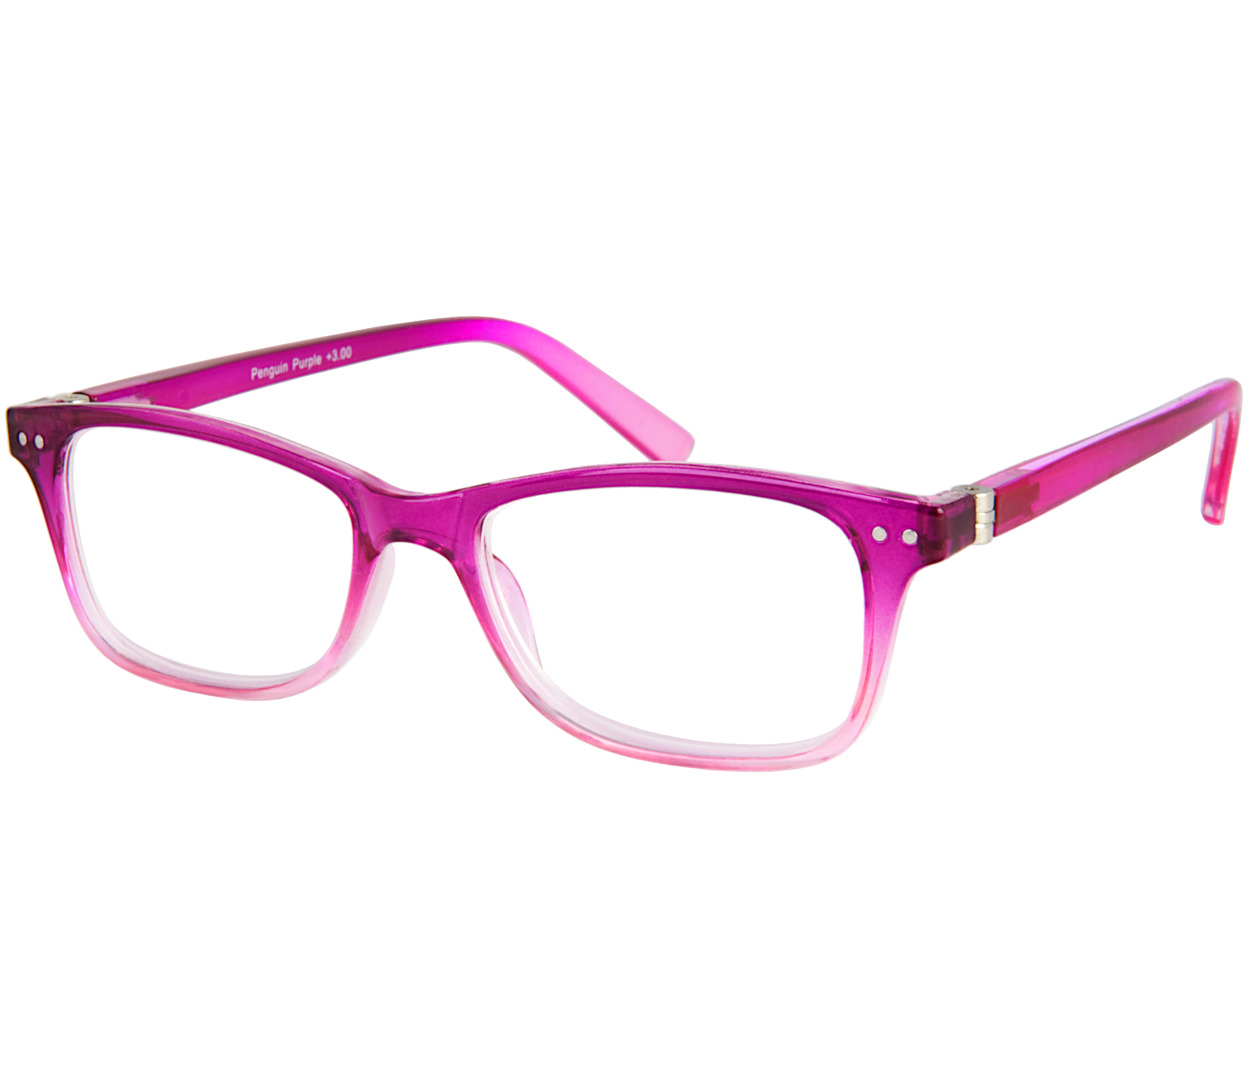 Main Image (Angle) - Penguin (Purple) Fashion Reading Glasses